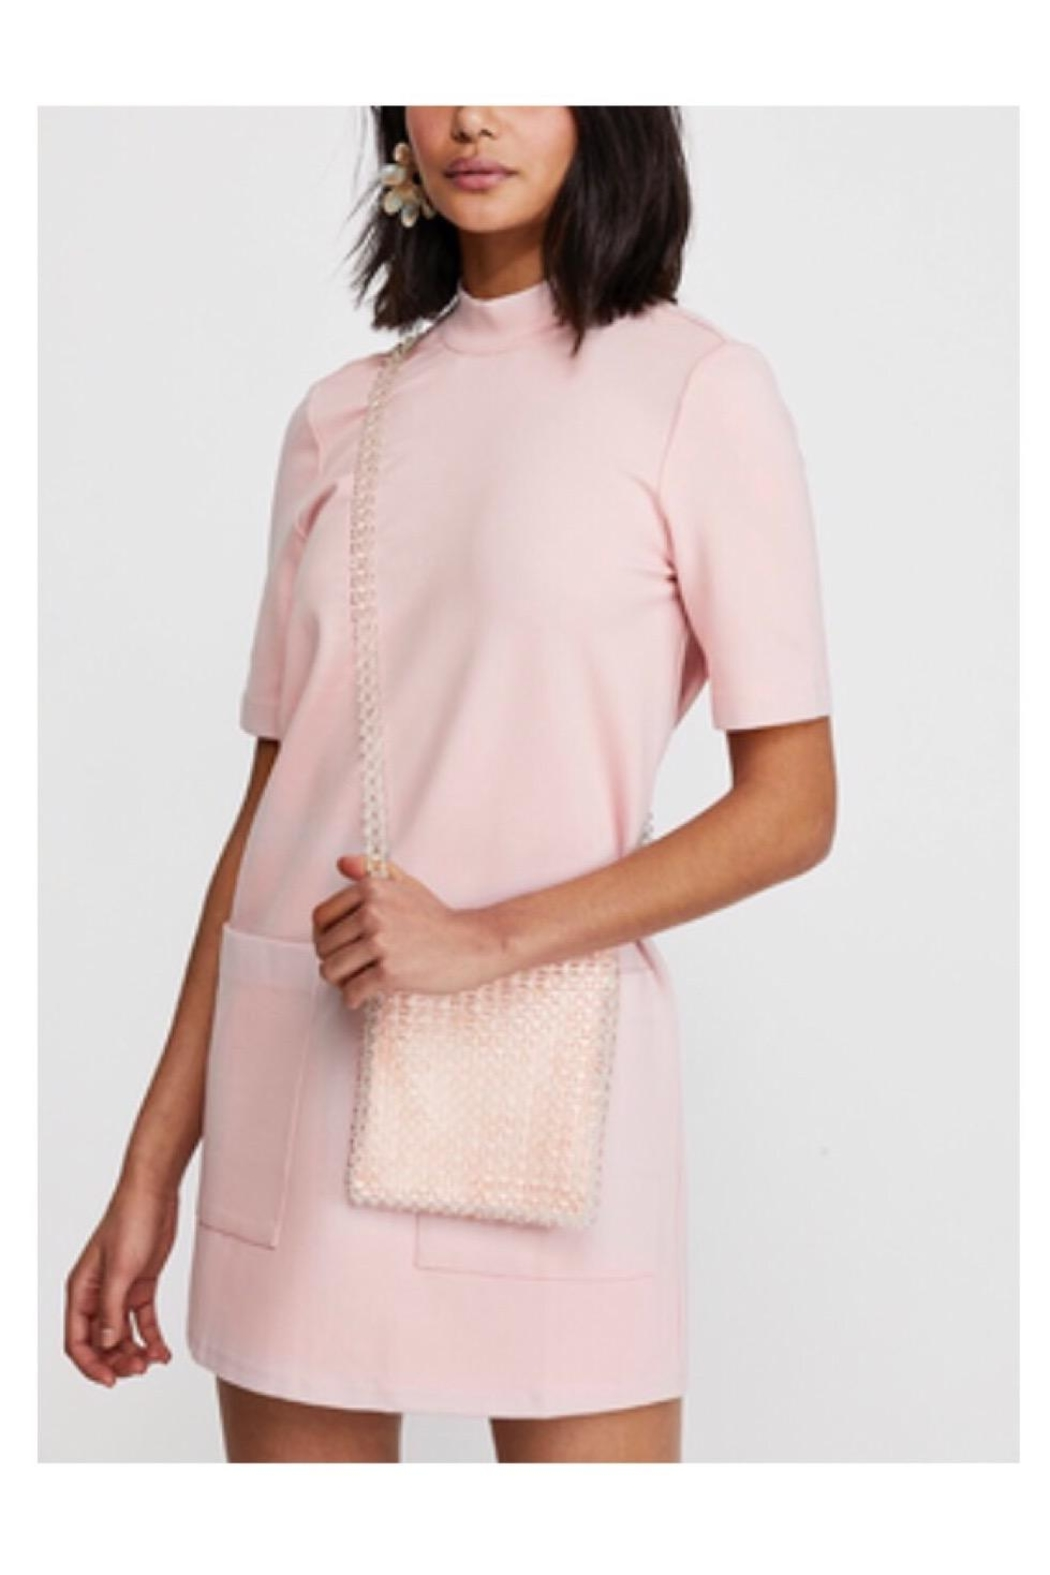 Free People Pink Comfy Dress - Main Image